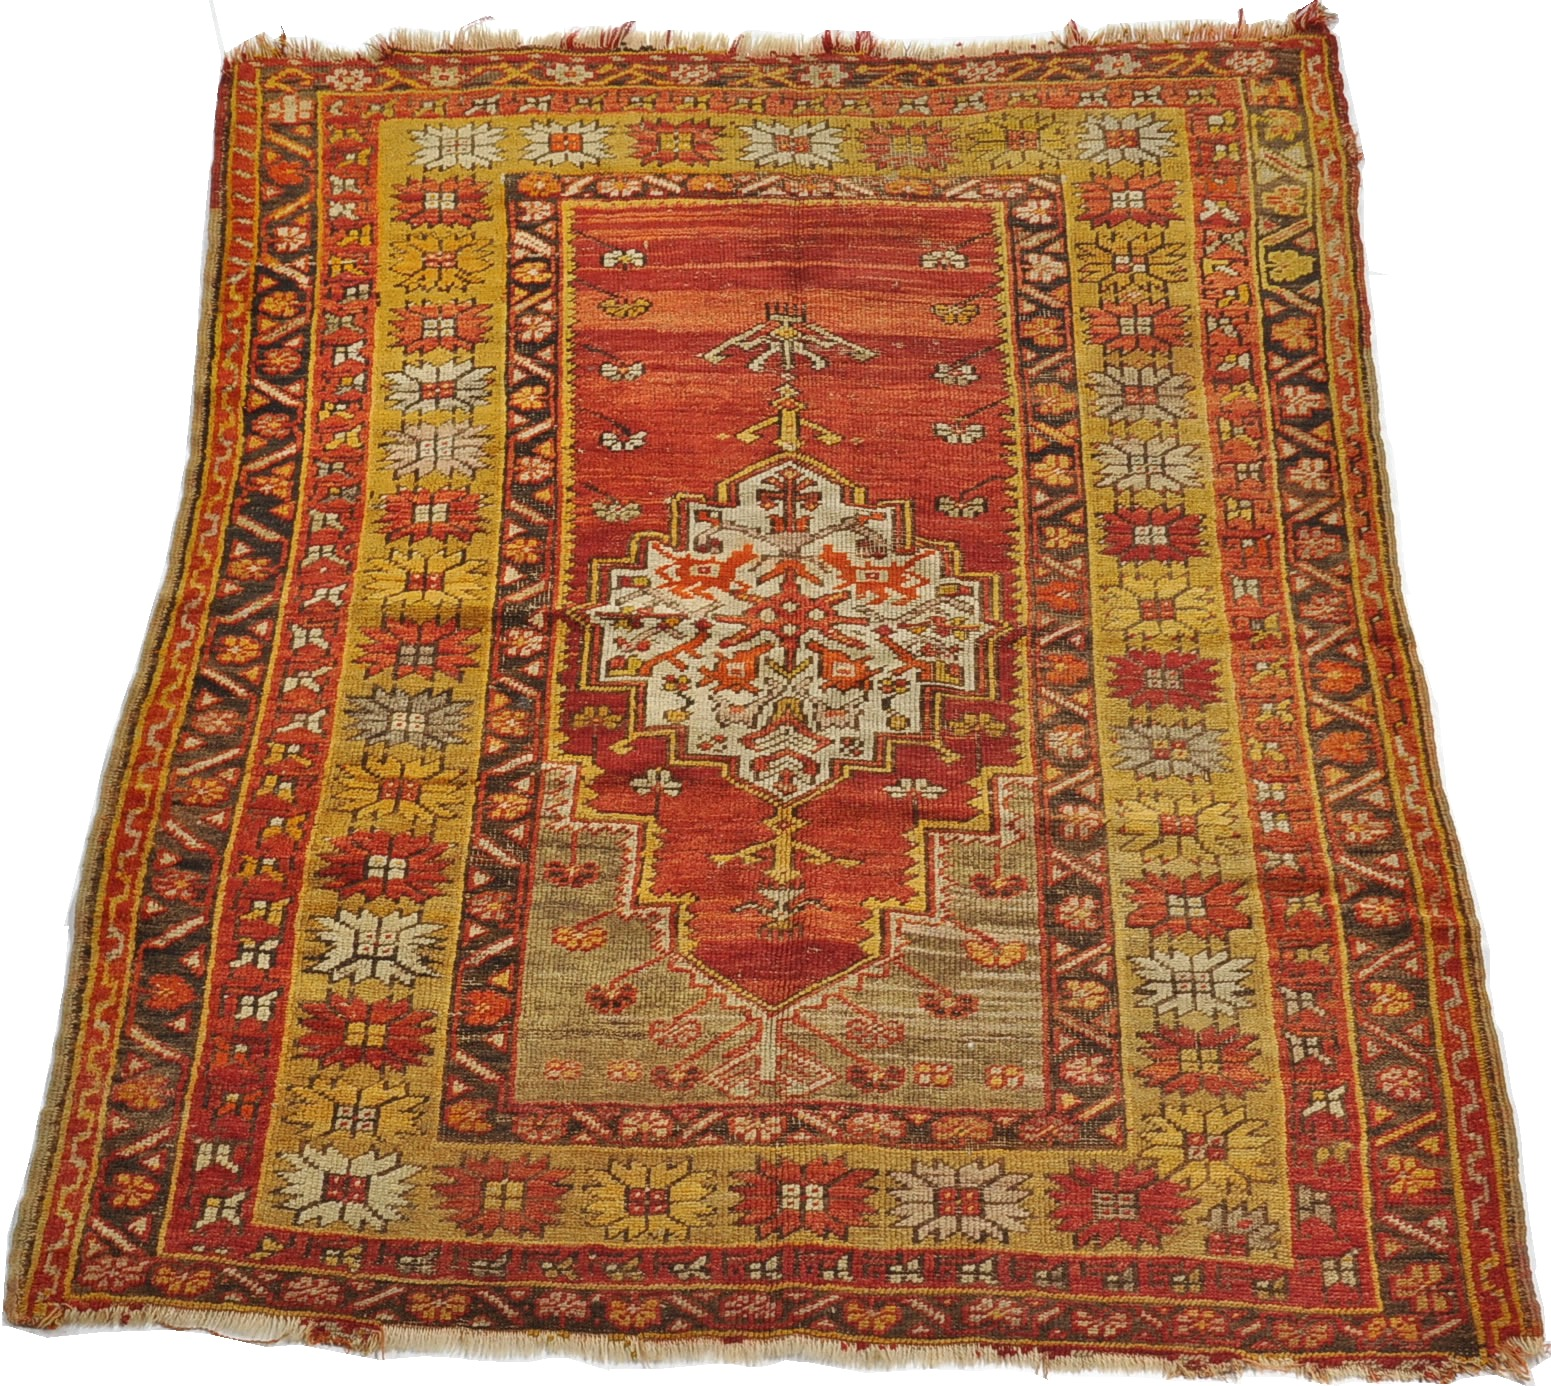 Prayer Rug Types: A Caucasian/Turkish Prayer Rug, 09.26.09, Sold: $149.5